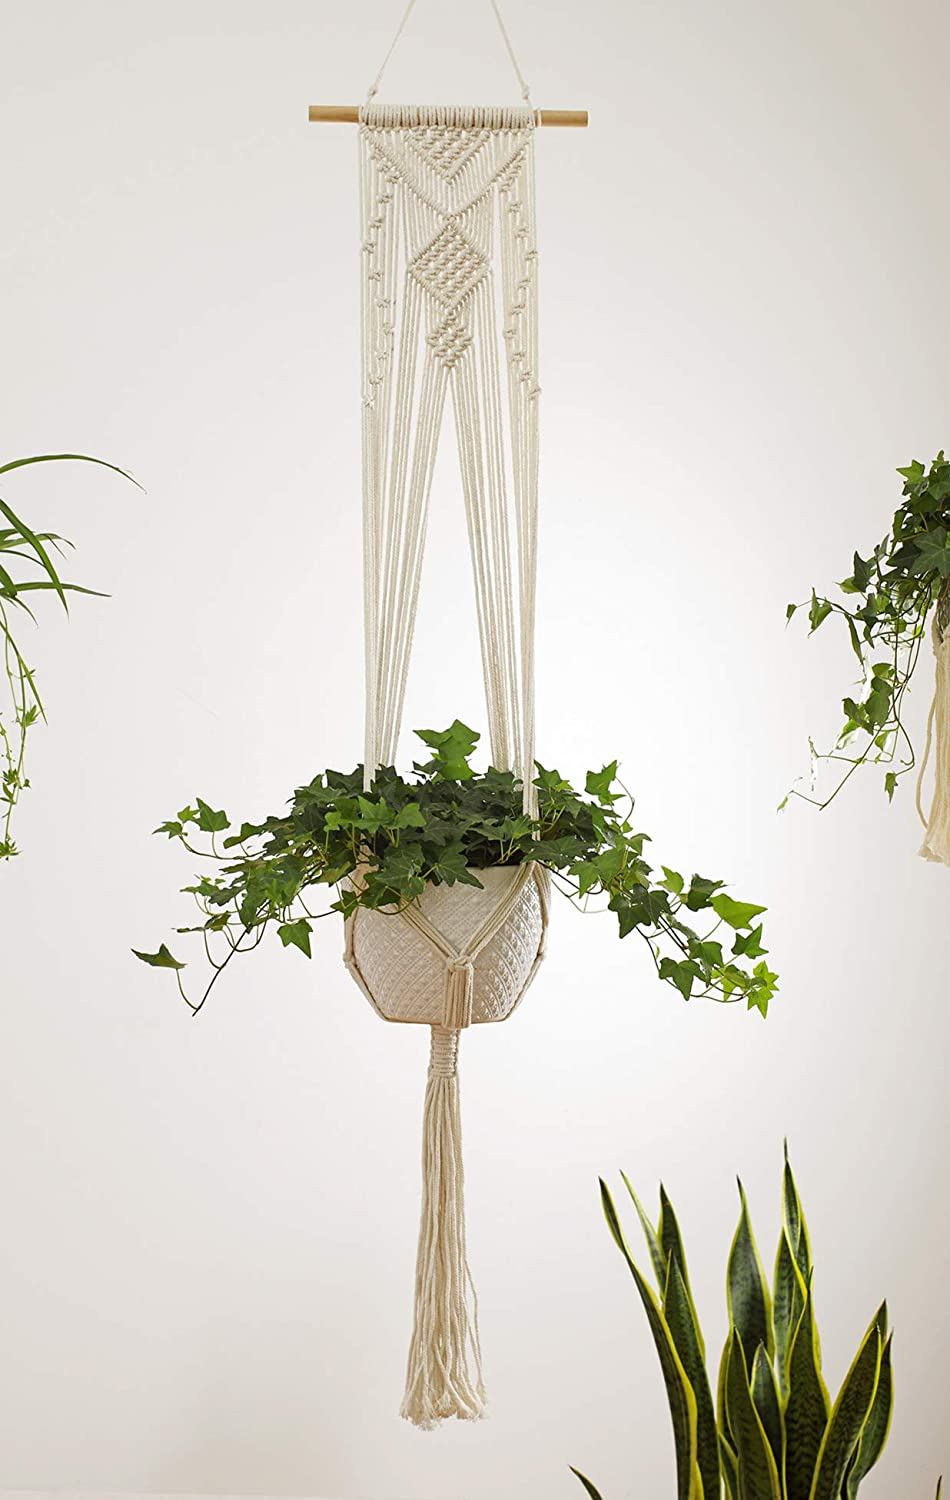 4-Piece Macrame Plant Hangers – Wall Hanging Flower Planter Pot Holder for Indoor House Plants, Modern Boho Bohemian Home Decor